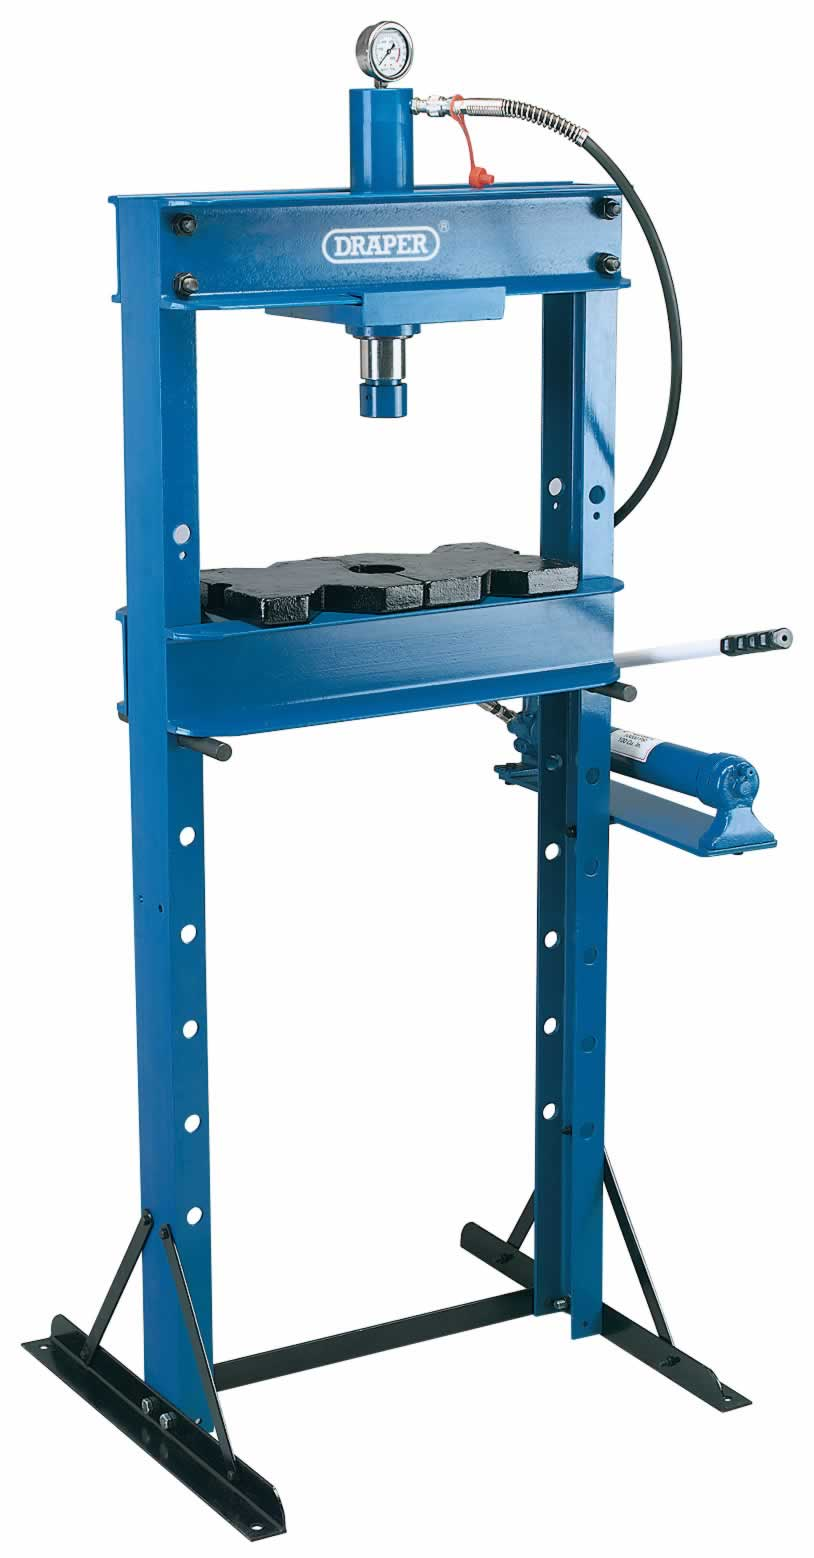 Workshop Presses Tools In Stock Uk Selling Draper